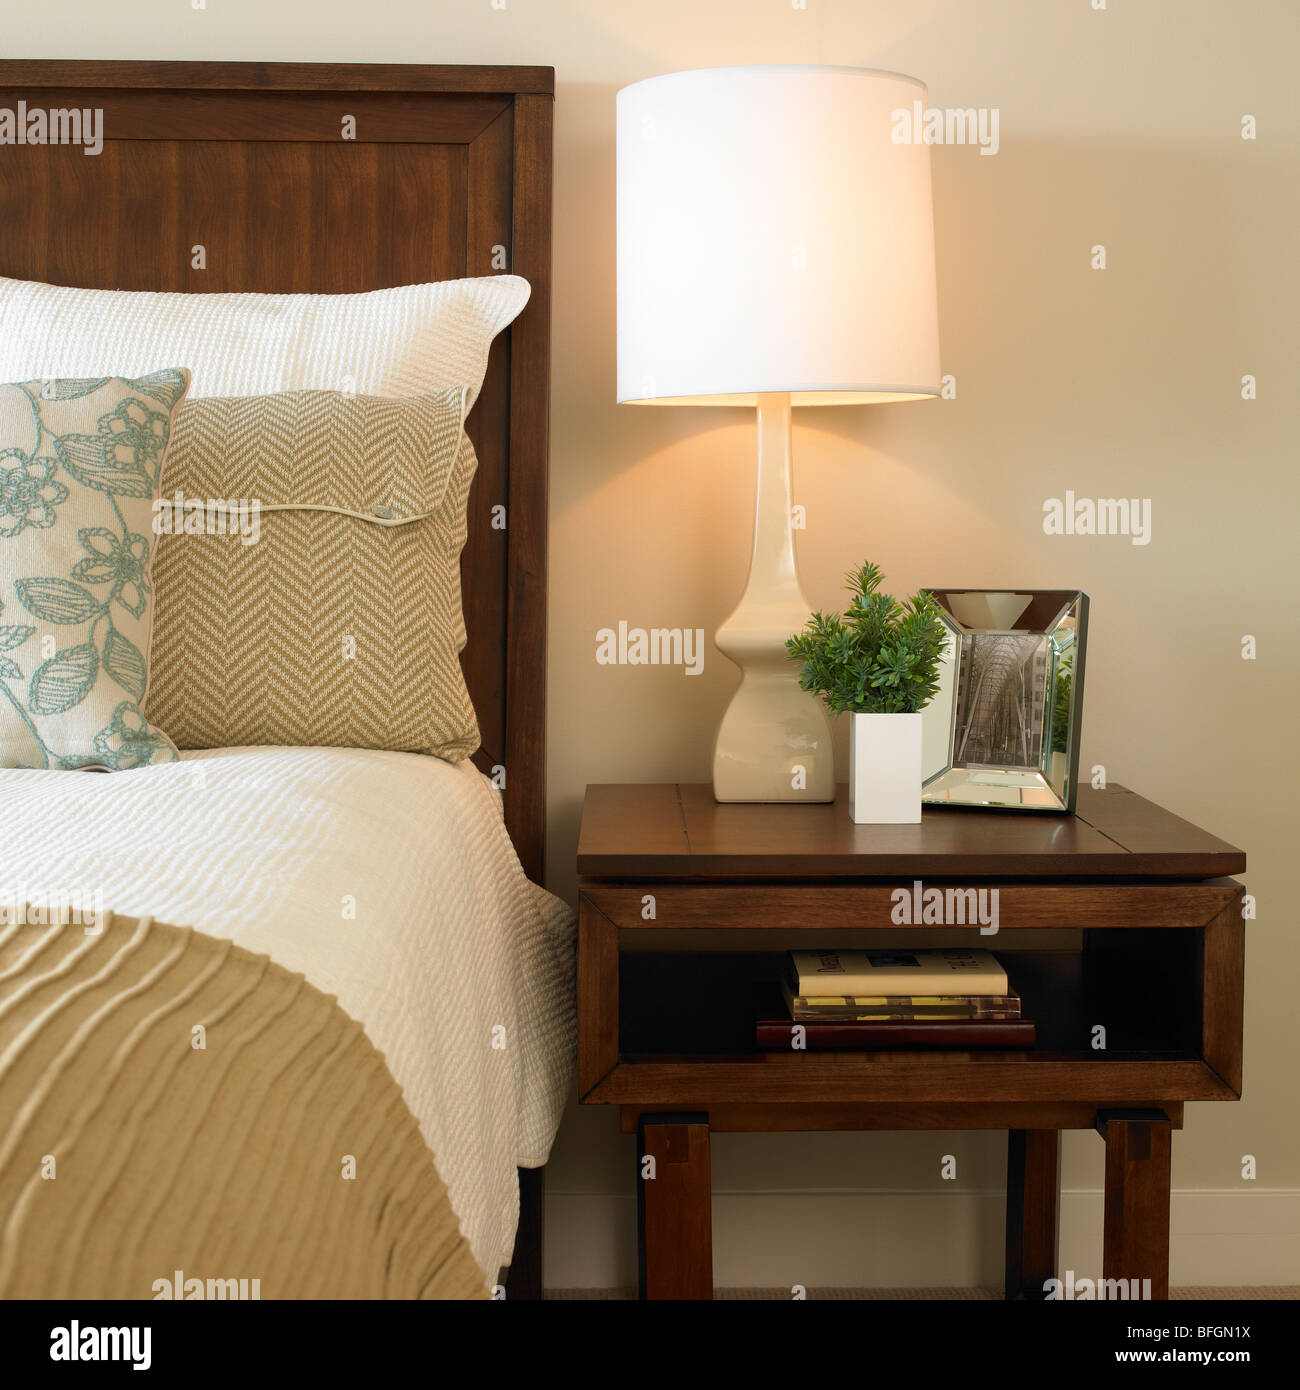 Bed And Bedside Table With Books Mirror And Lamp Victoria